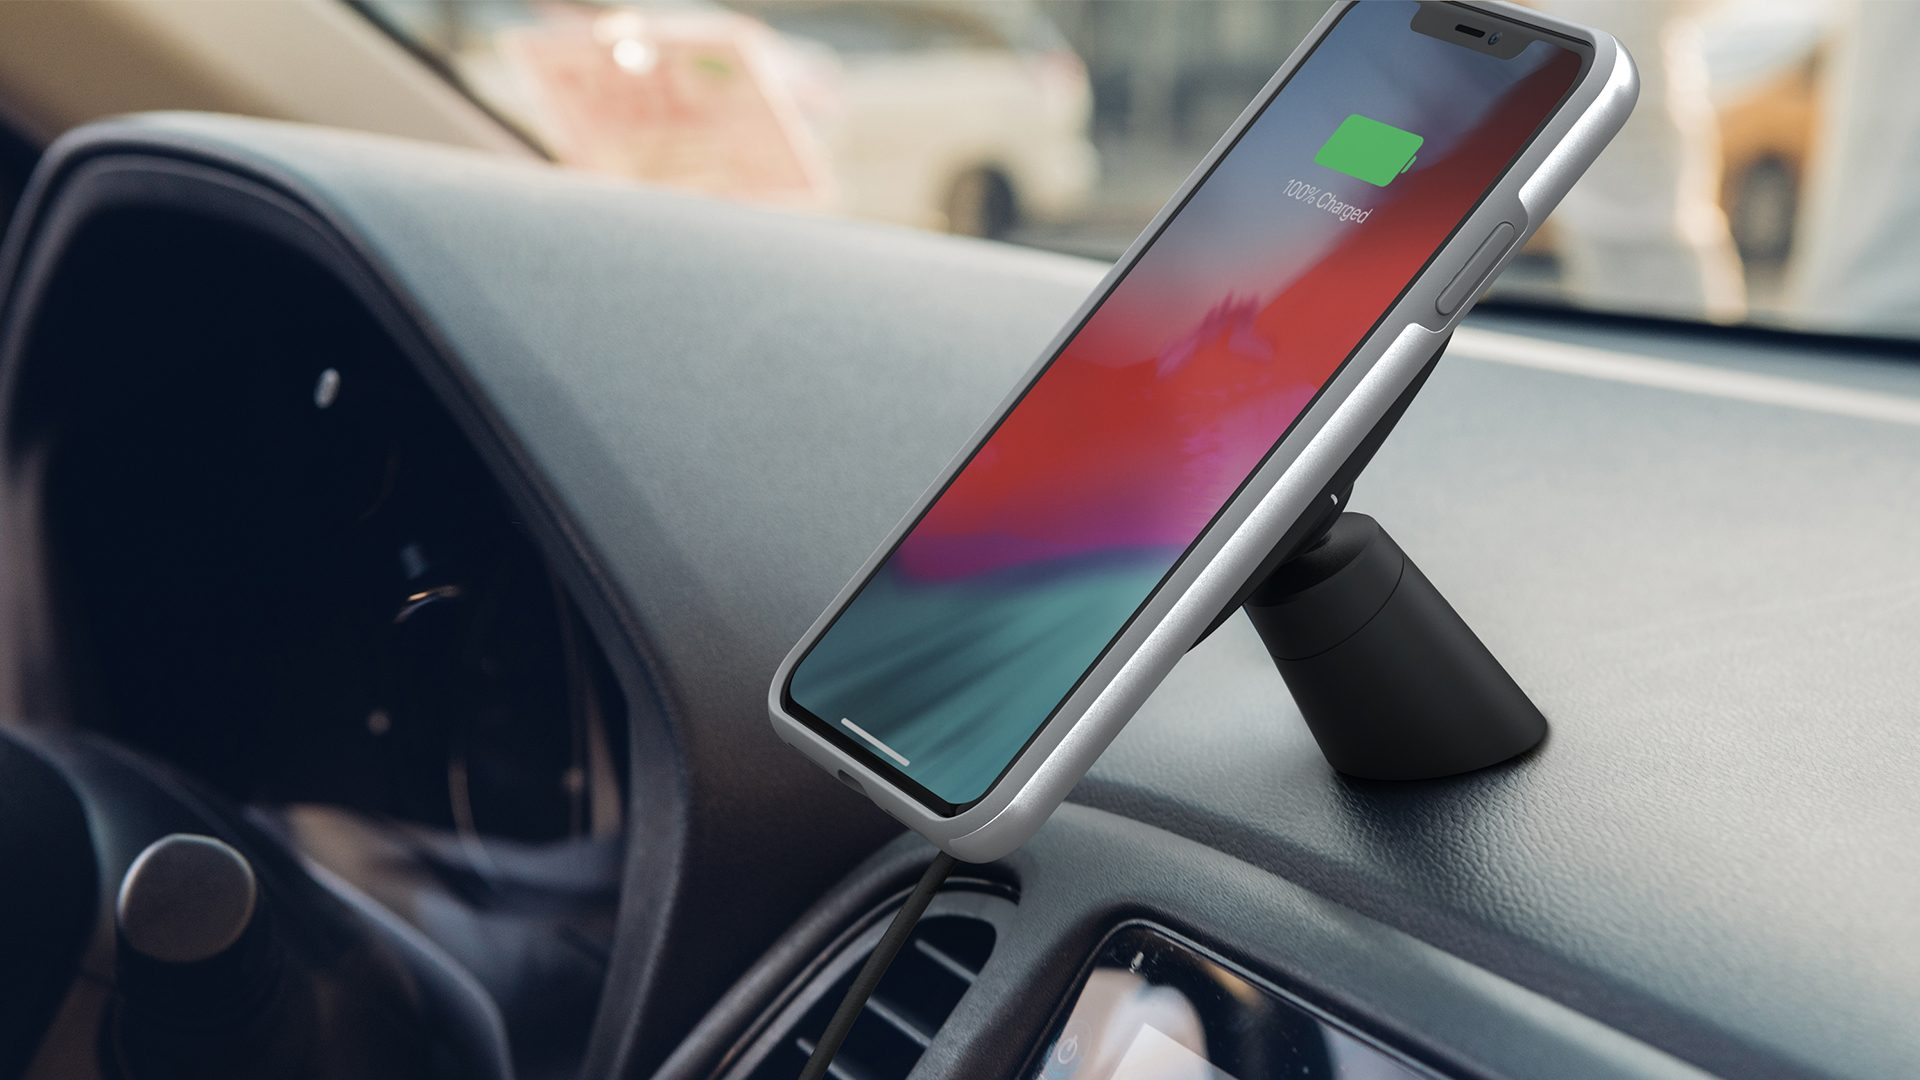 Moshi has introduced car mount for iPhone and USB-C headphone with DAC